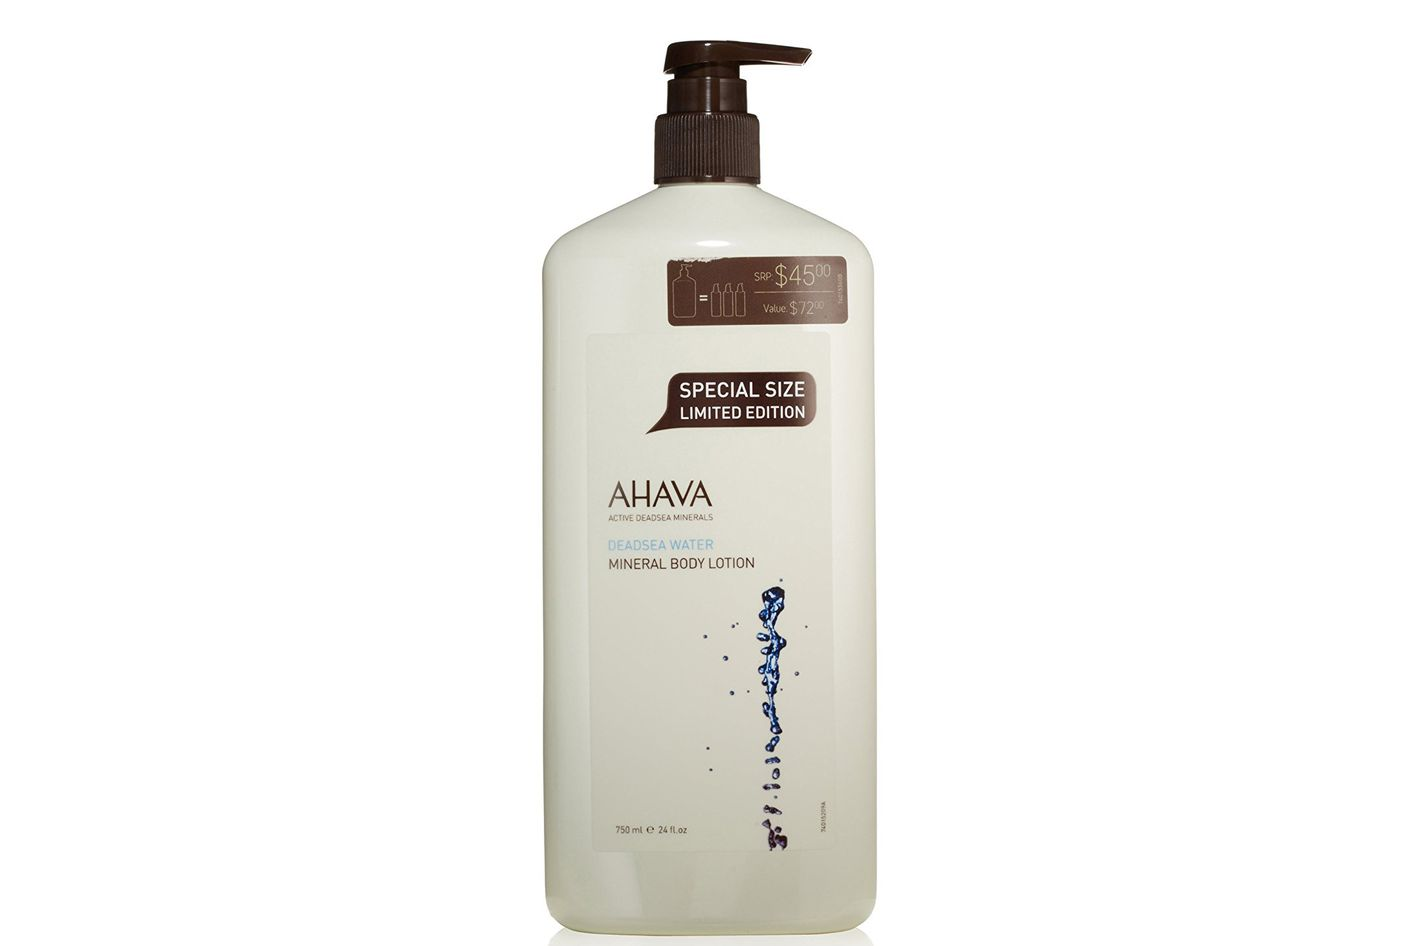 AHAVA Dead Sea Water Mineral Body Lotion